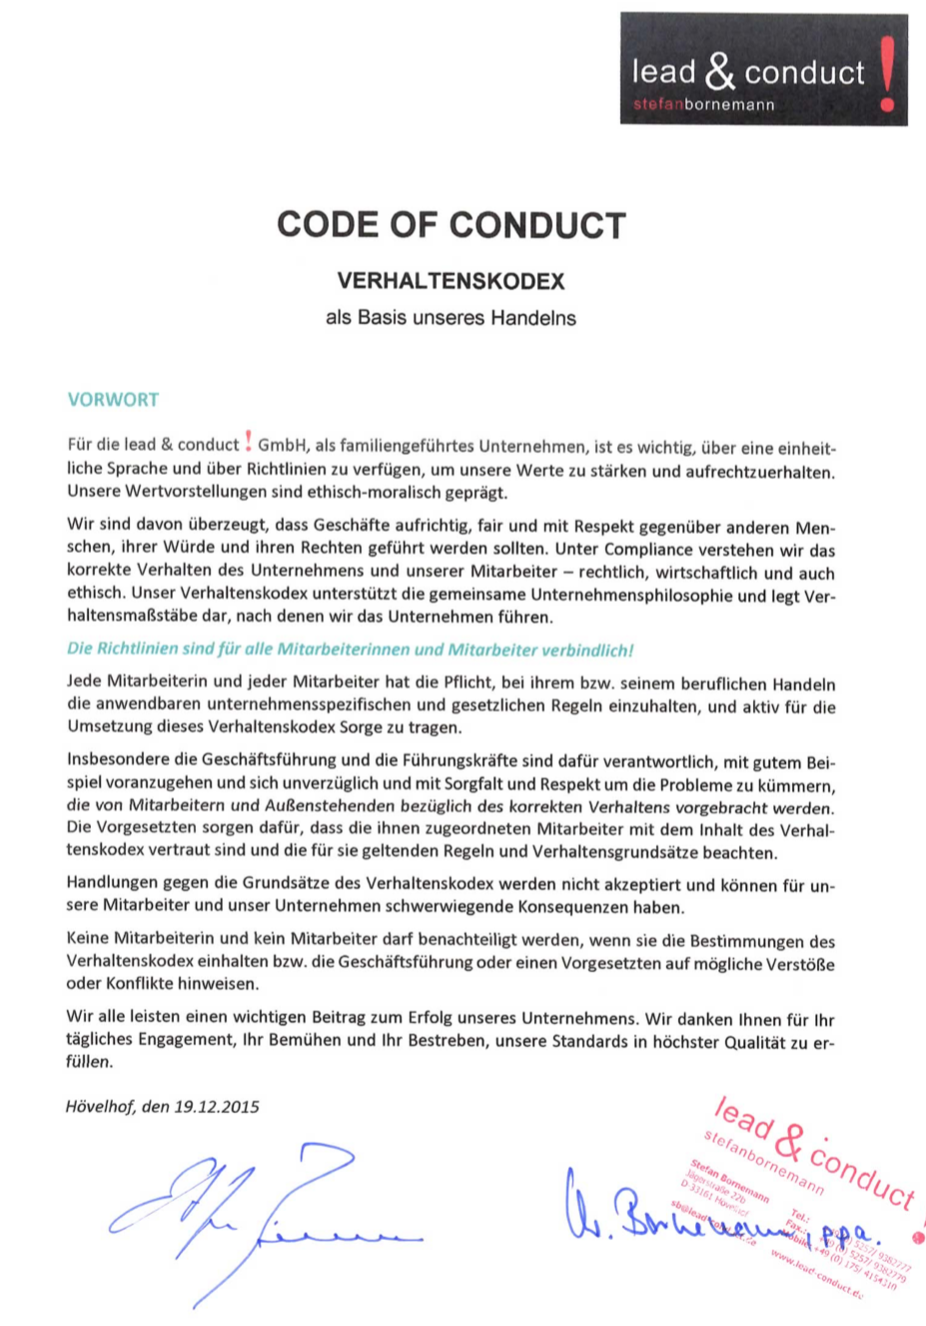 Verhaltenskodex code of conduct lead & conduct gmbh